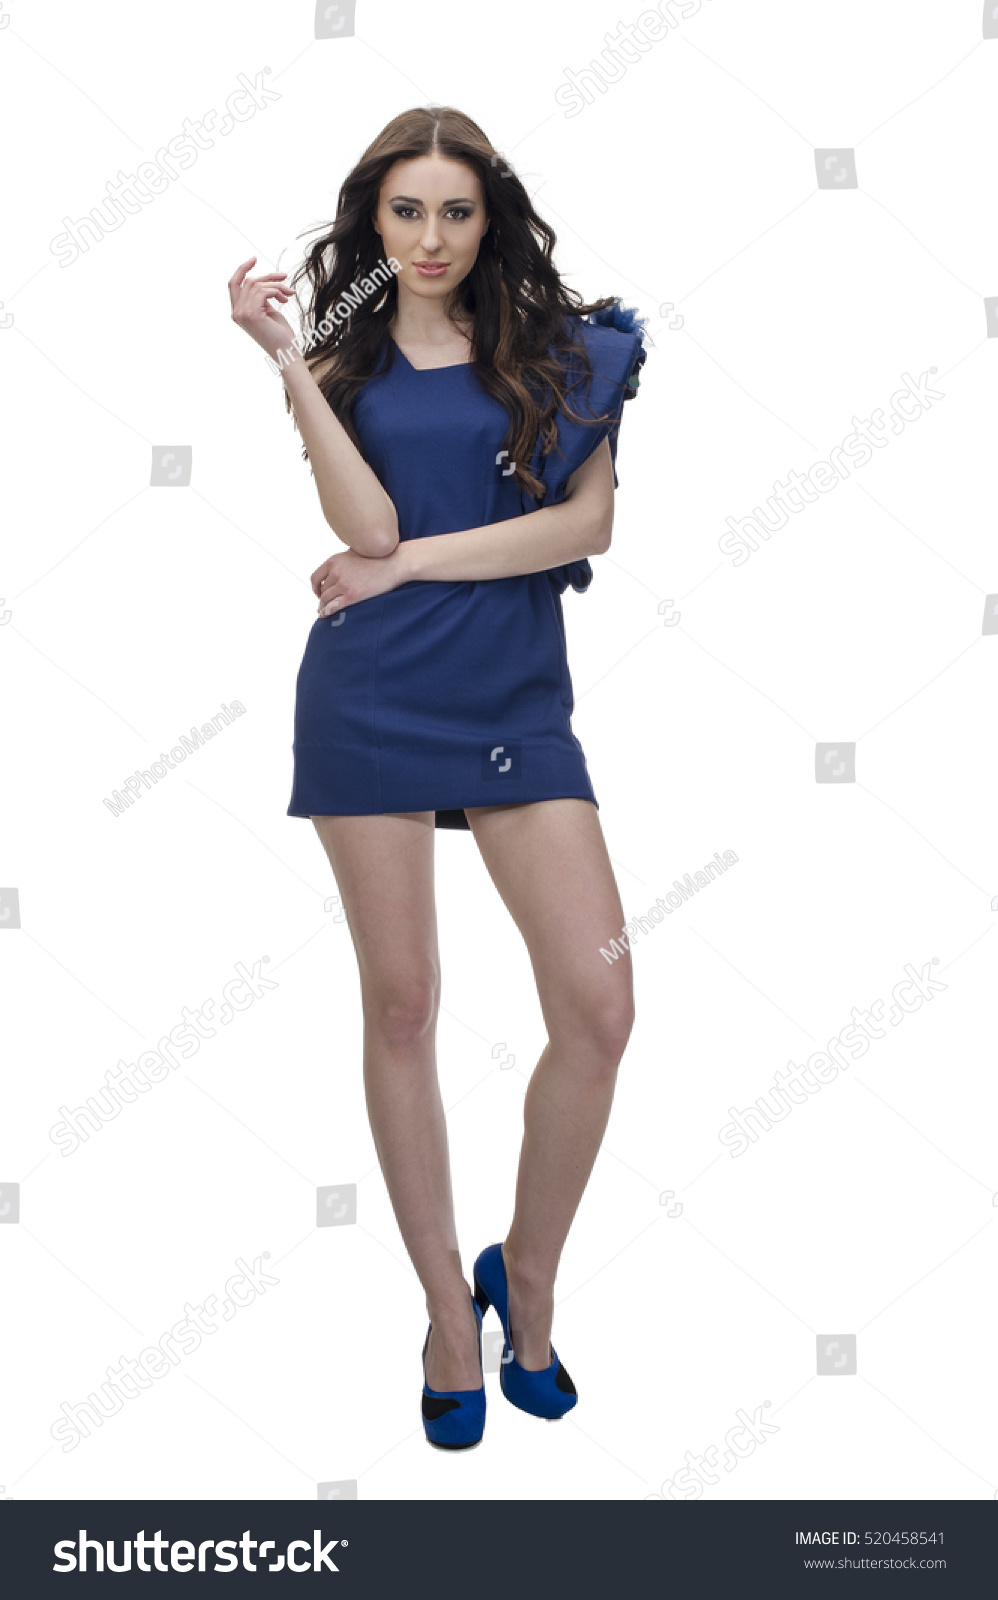 Young Pretty Lady In Blue Dress Full Length Studio